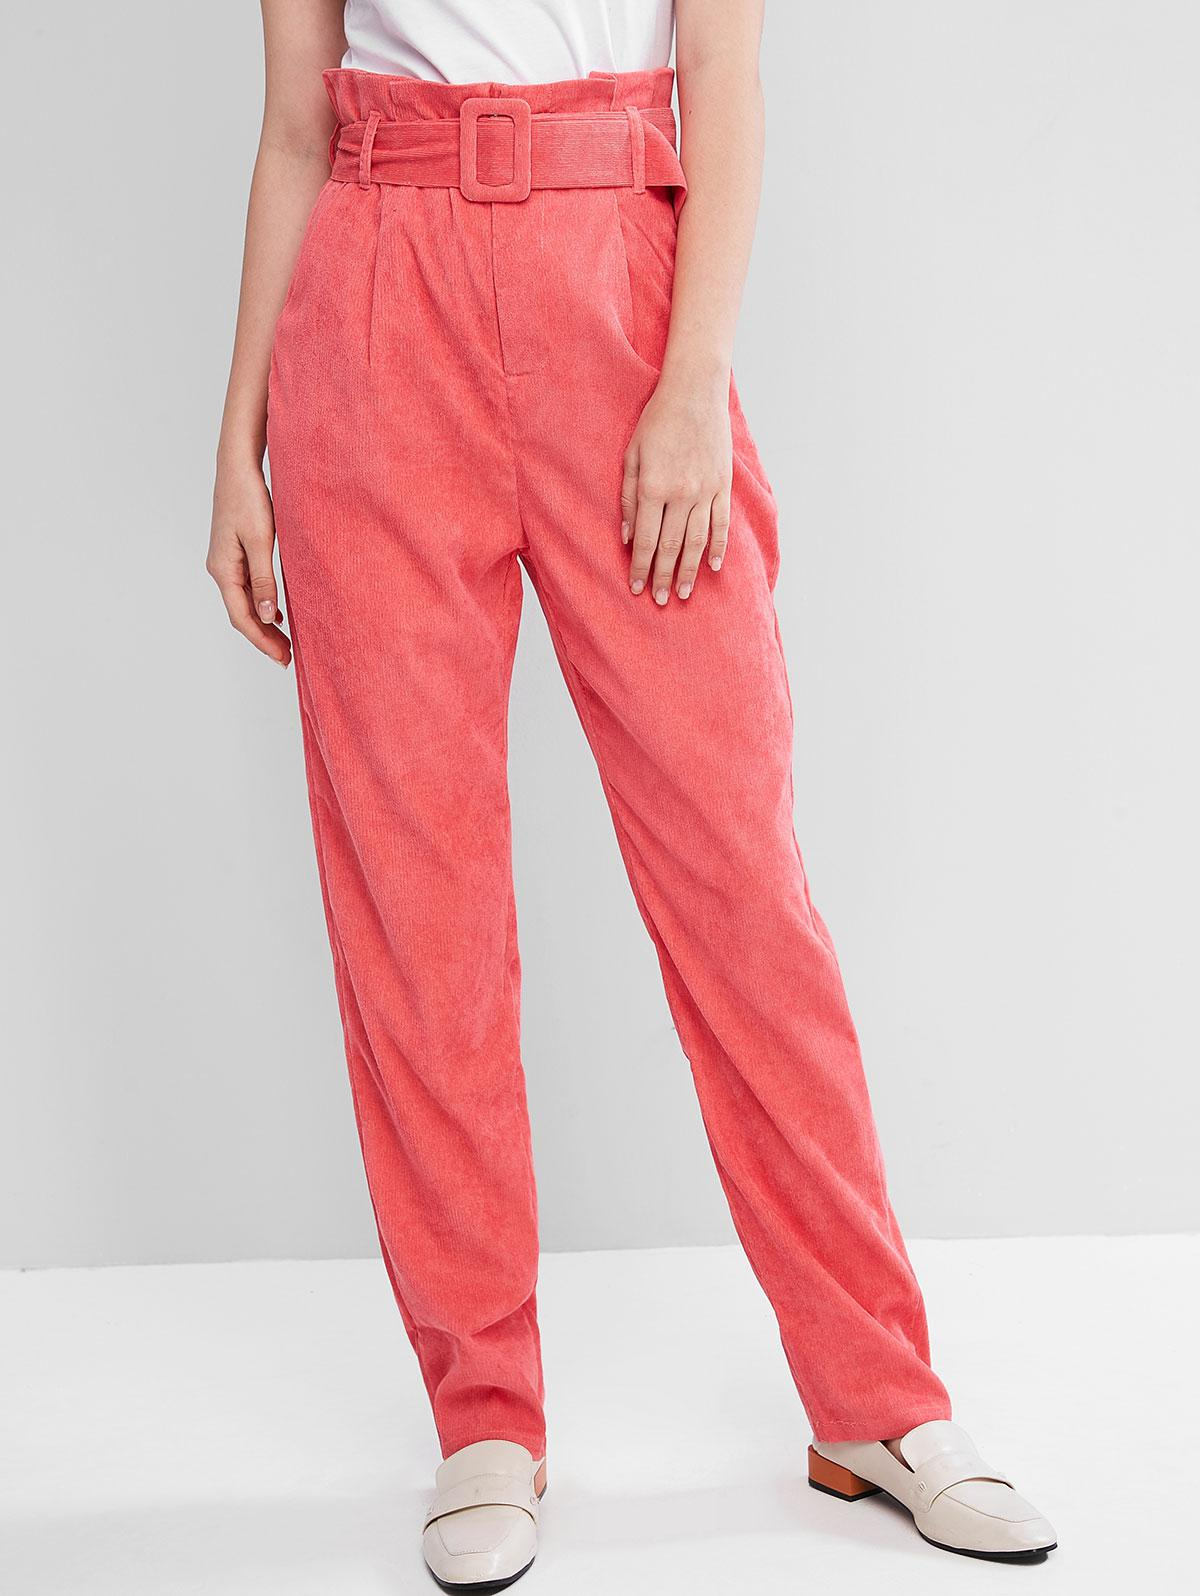 High Waist Belted Corduroy Pants